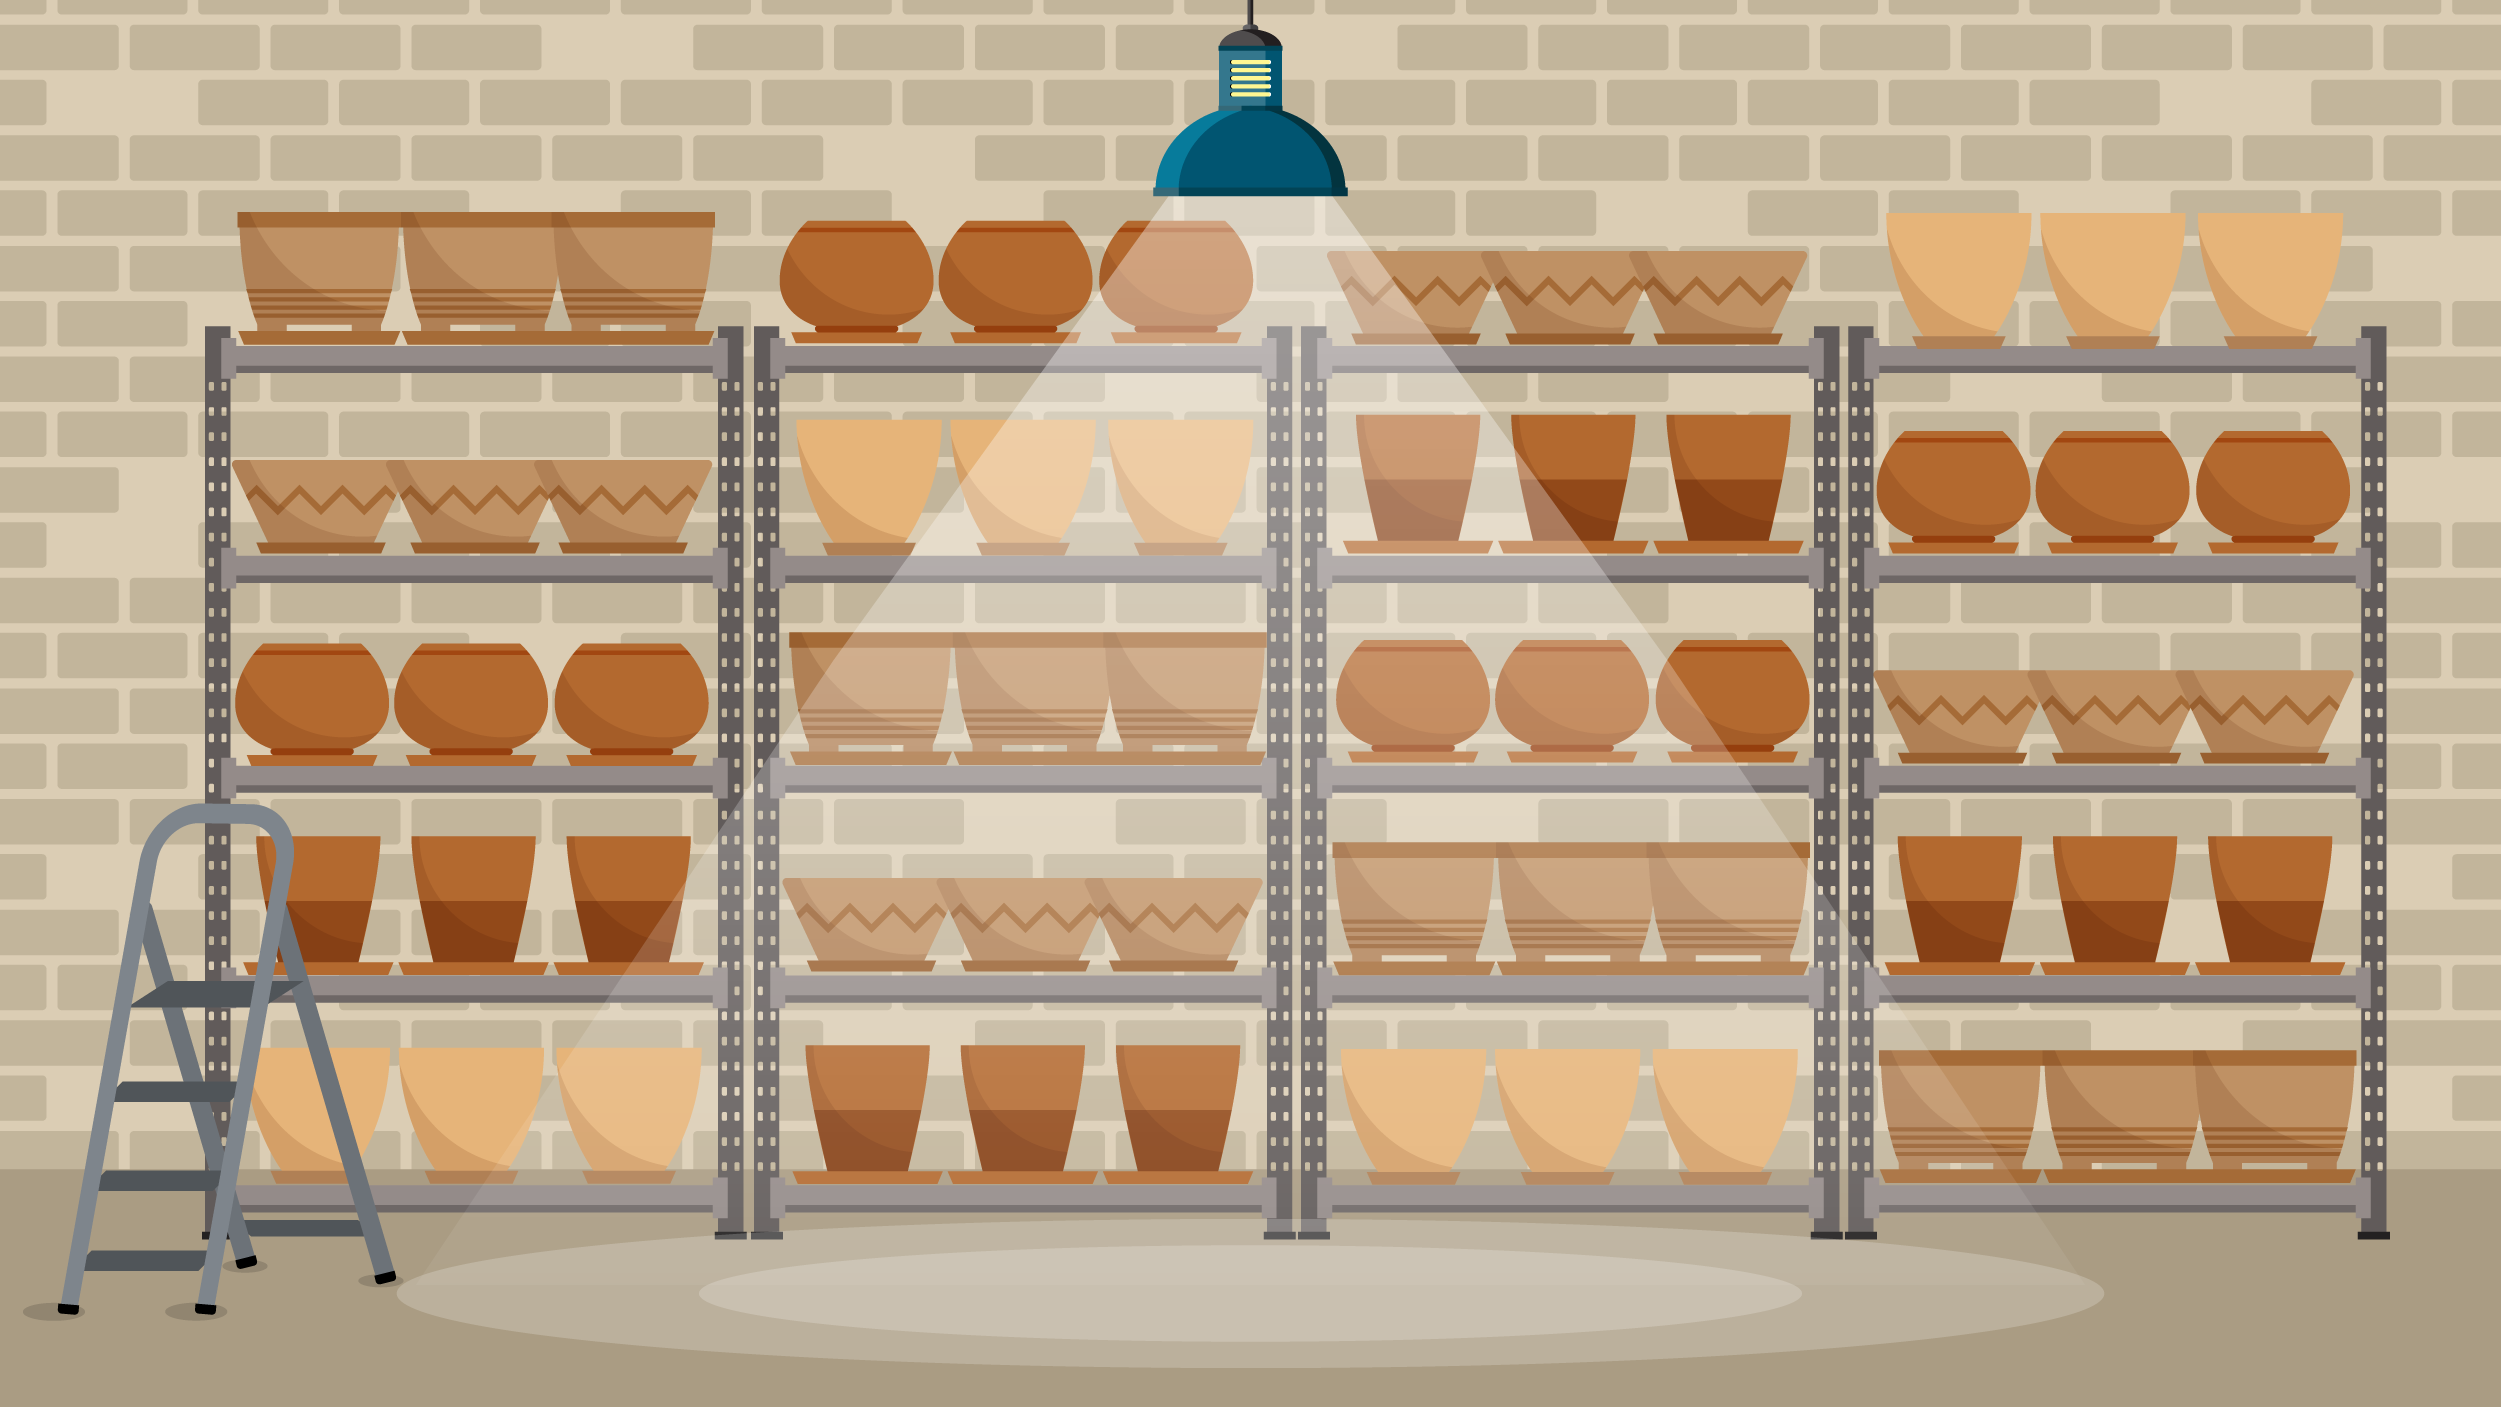 Illustration of pots stacked neatly on shelves.